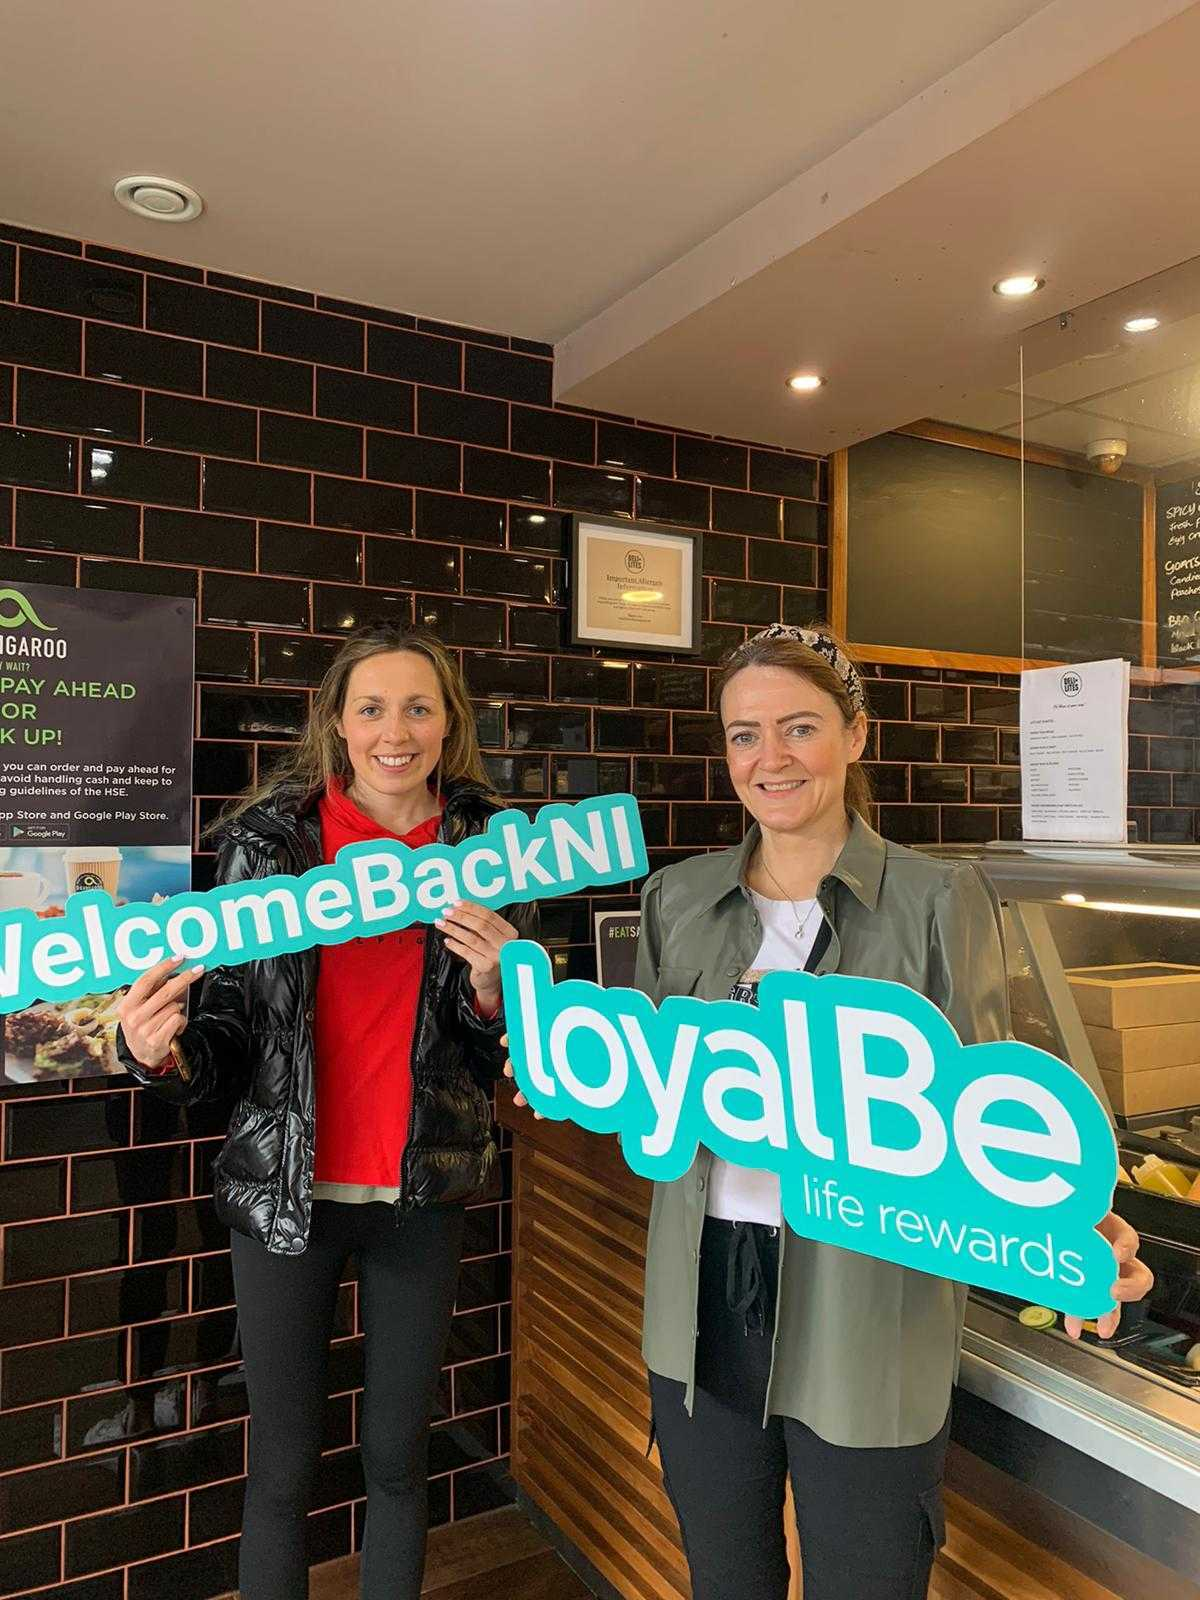 Local Loyalty App, loyalBe, Officially Launches in Newry this Week Newry Times -DeliLites - newry news